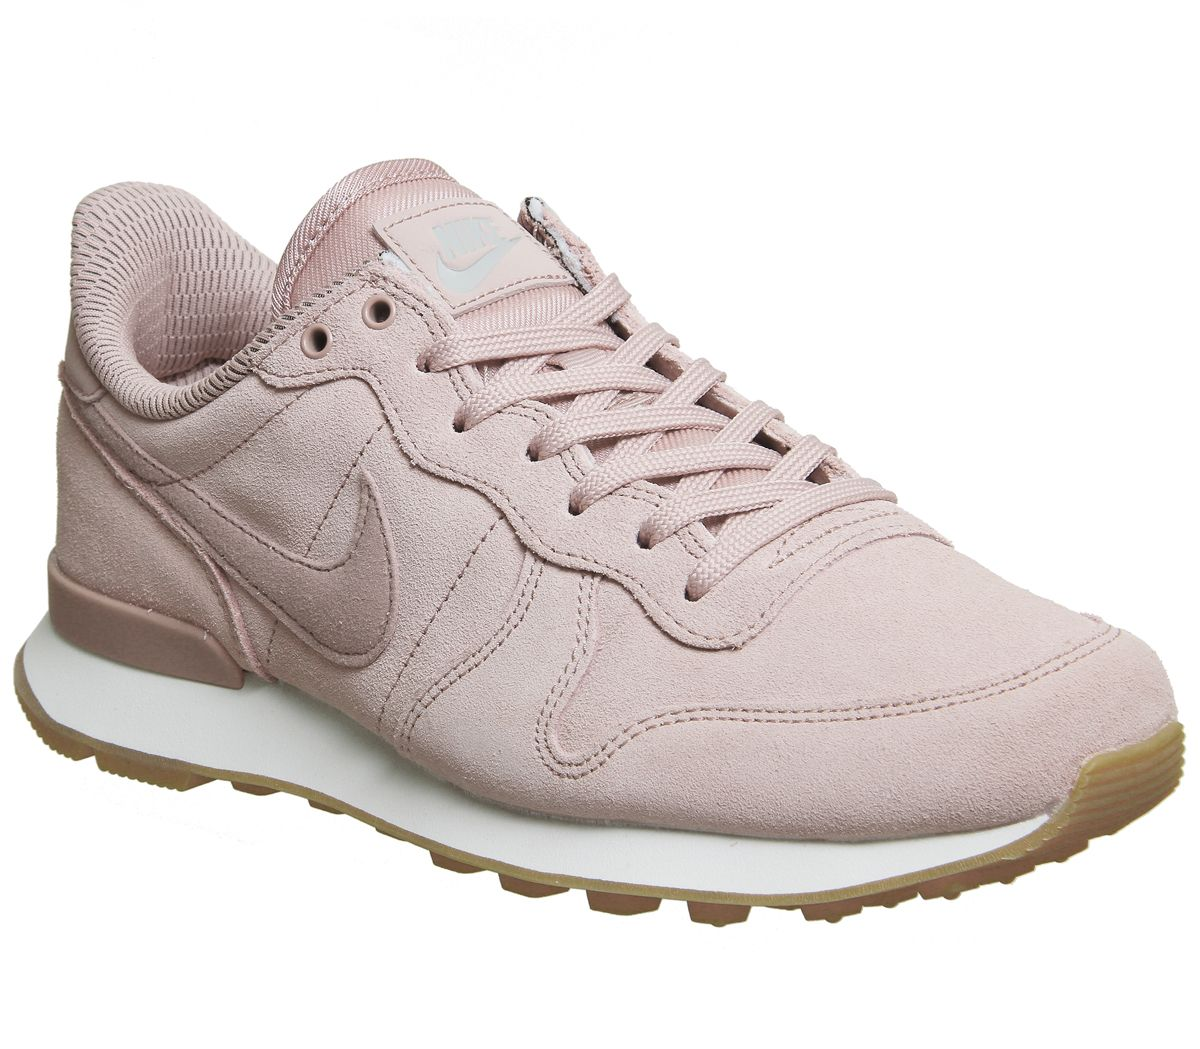 sports shoes ad0cd 3f319 Nike Nike Internationalist Trainers Particle Pink - Hers trainers